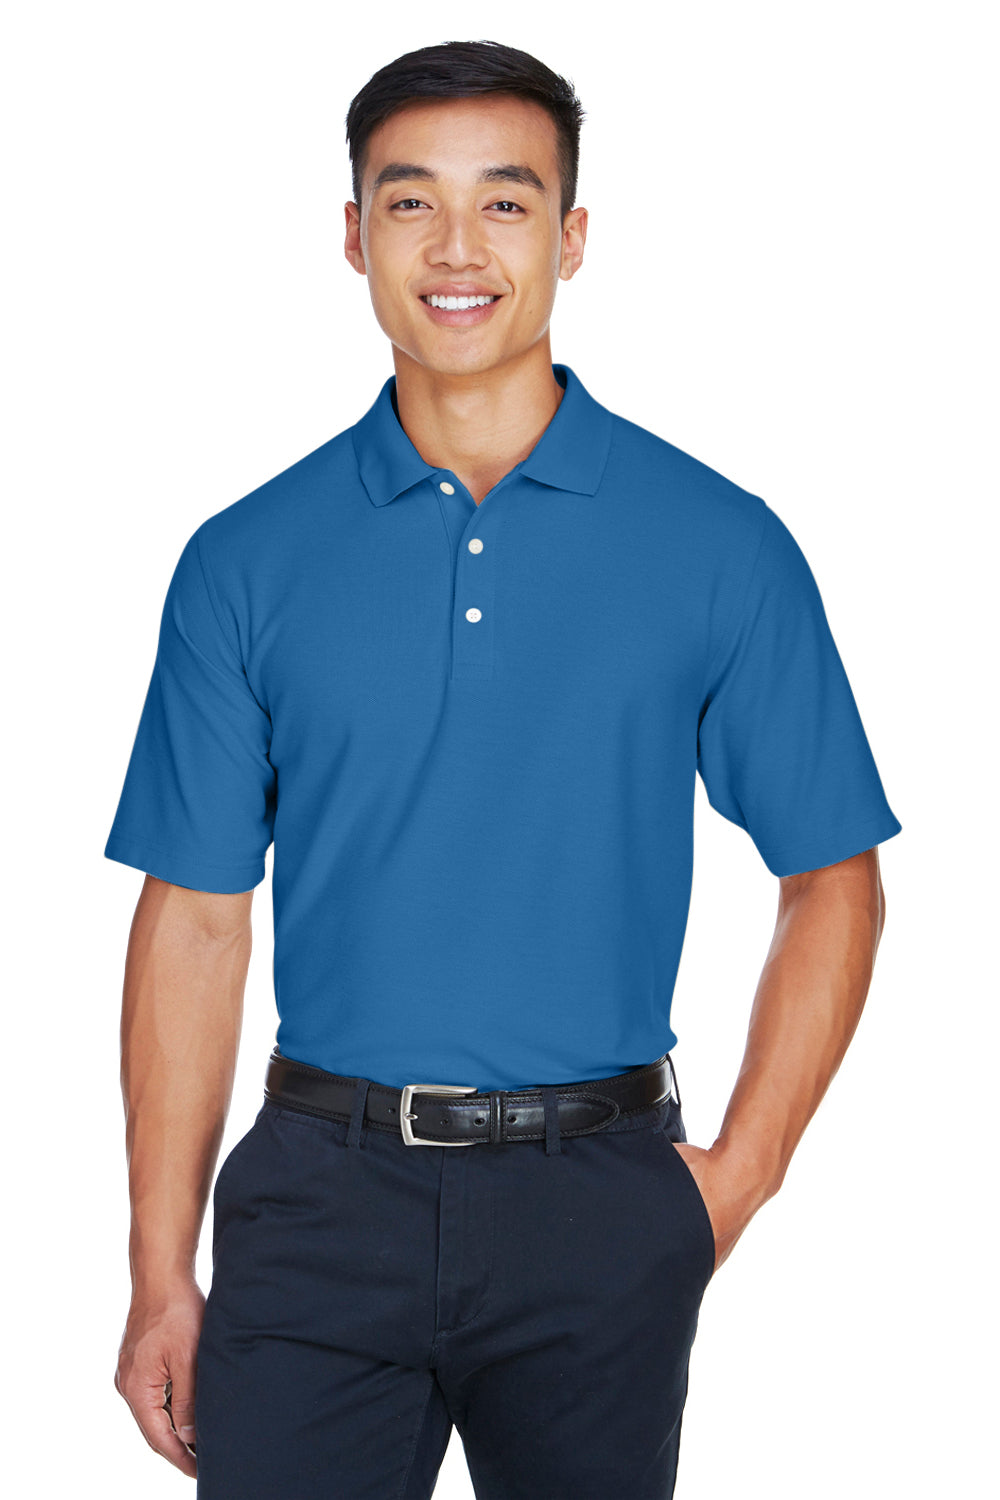 Devon & Jones DG150 Mens DryTec20 Performance Moisture Wicking Short Sleeve Polo Shirt French Blue Front